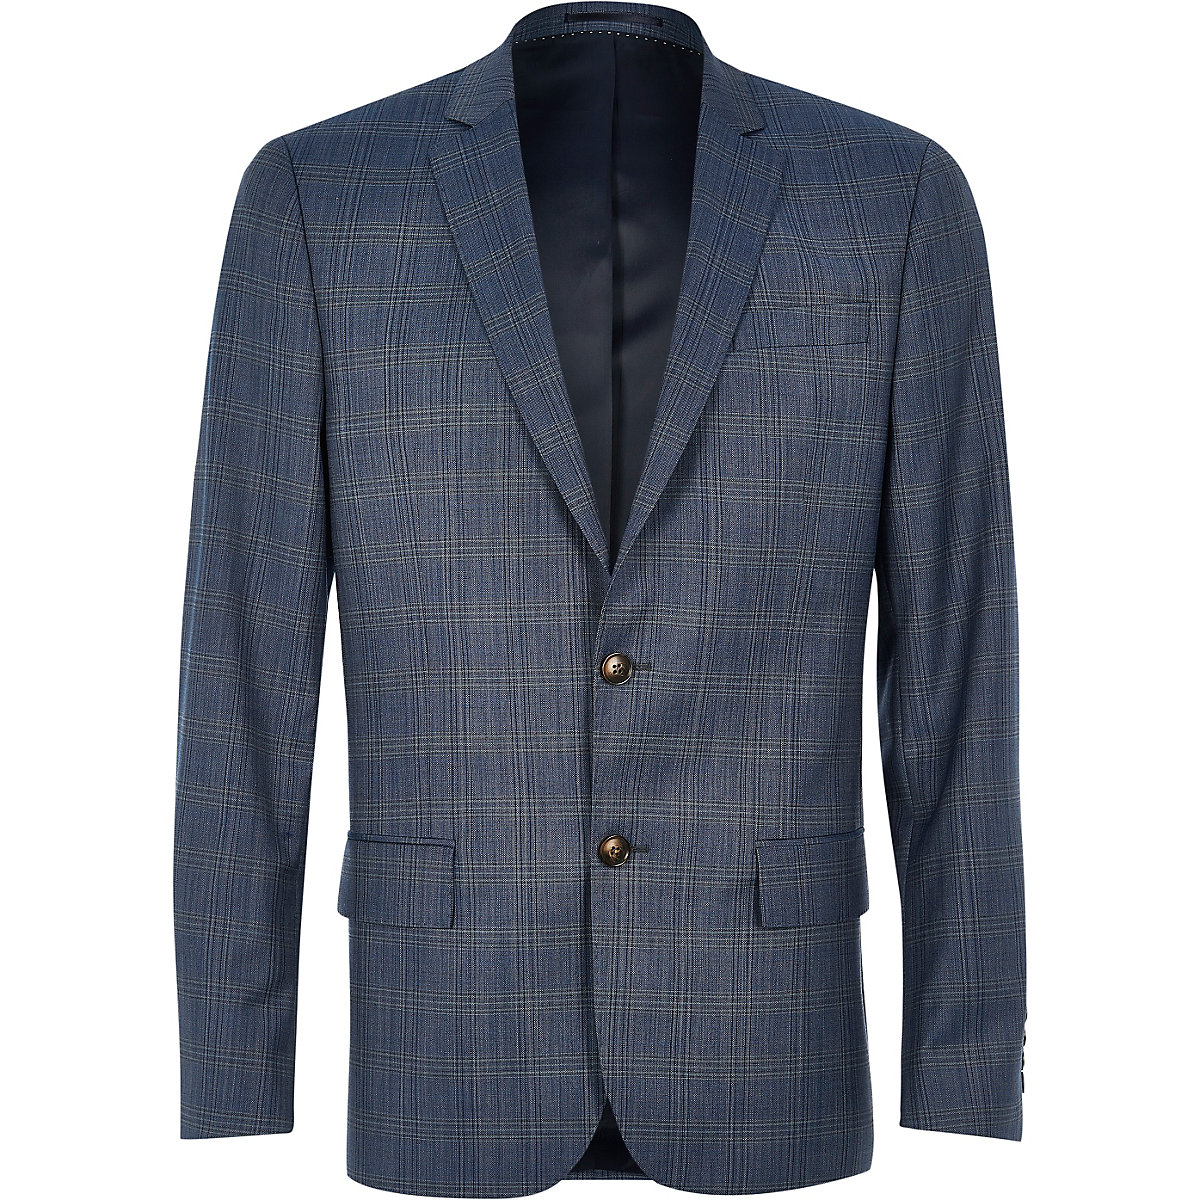 Blue checked slim Travel Suit jacket